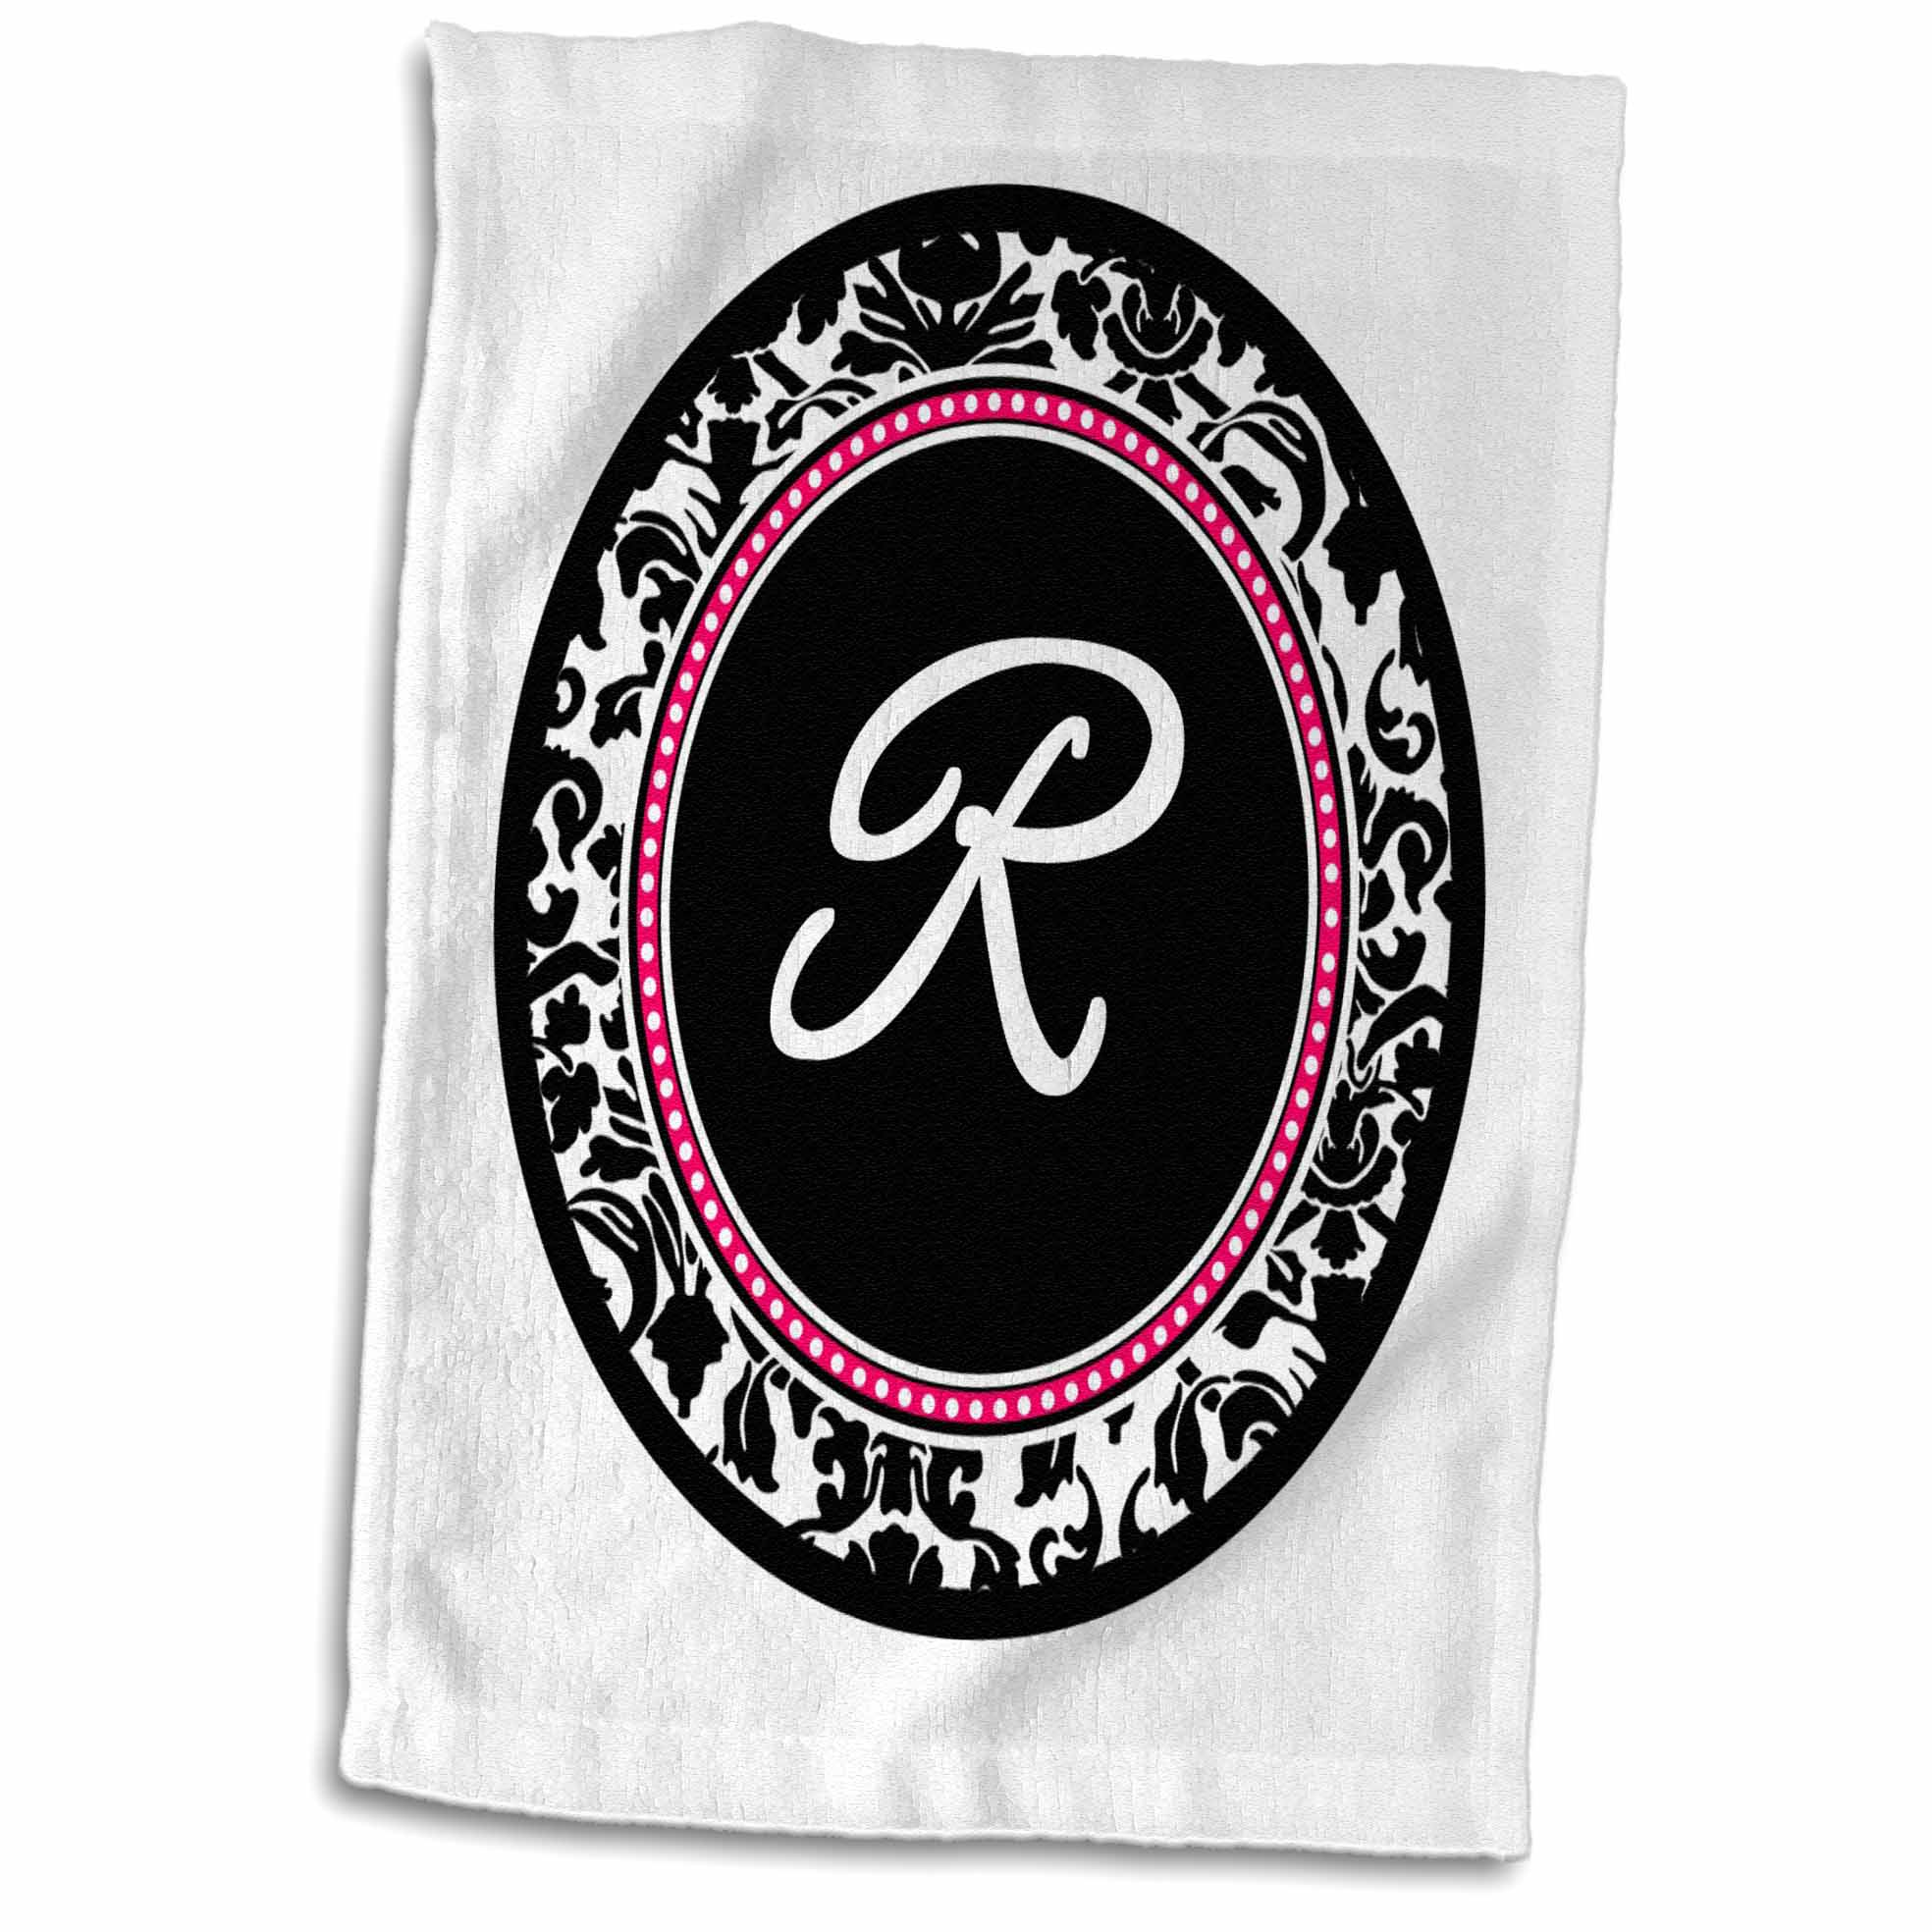 3dRose Letter R stylish monogrammed circle - girly personal initial personalized black damask with hot pink - Towel, 15 by 22-inch